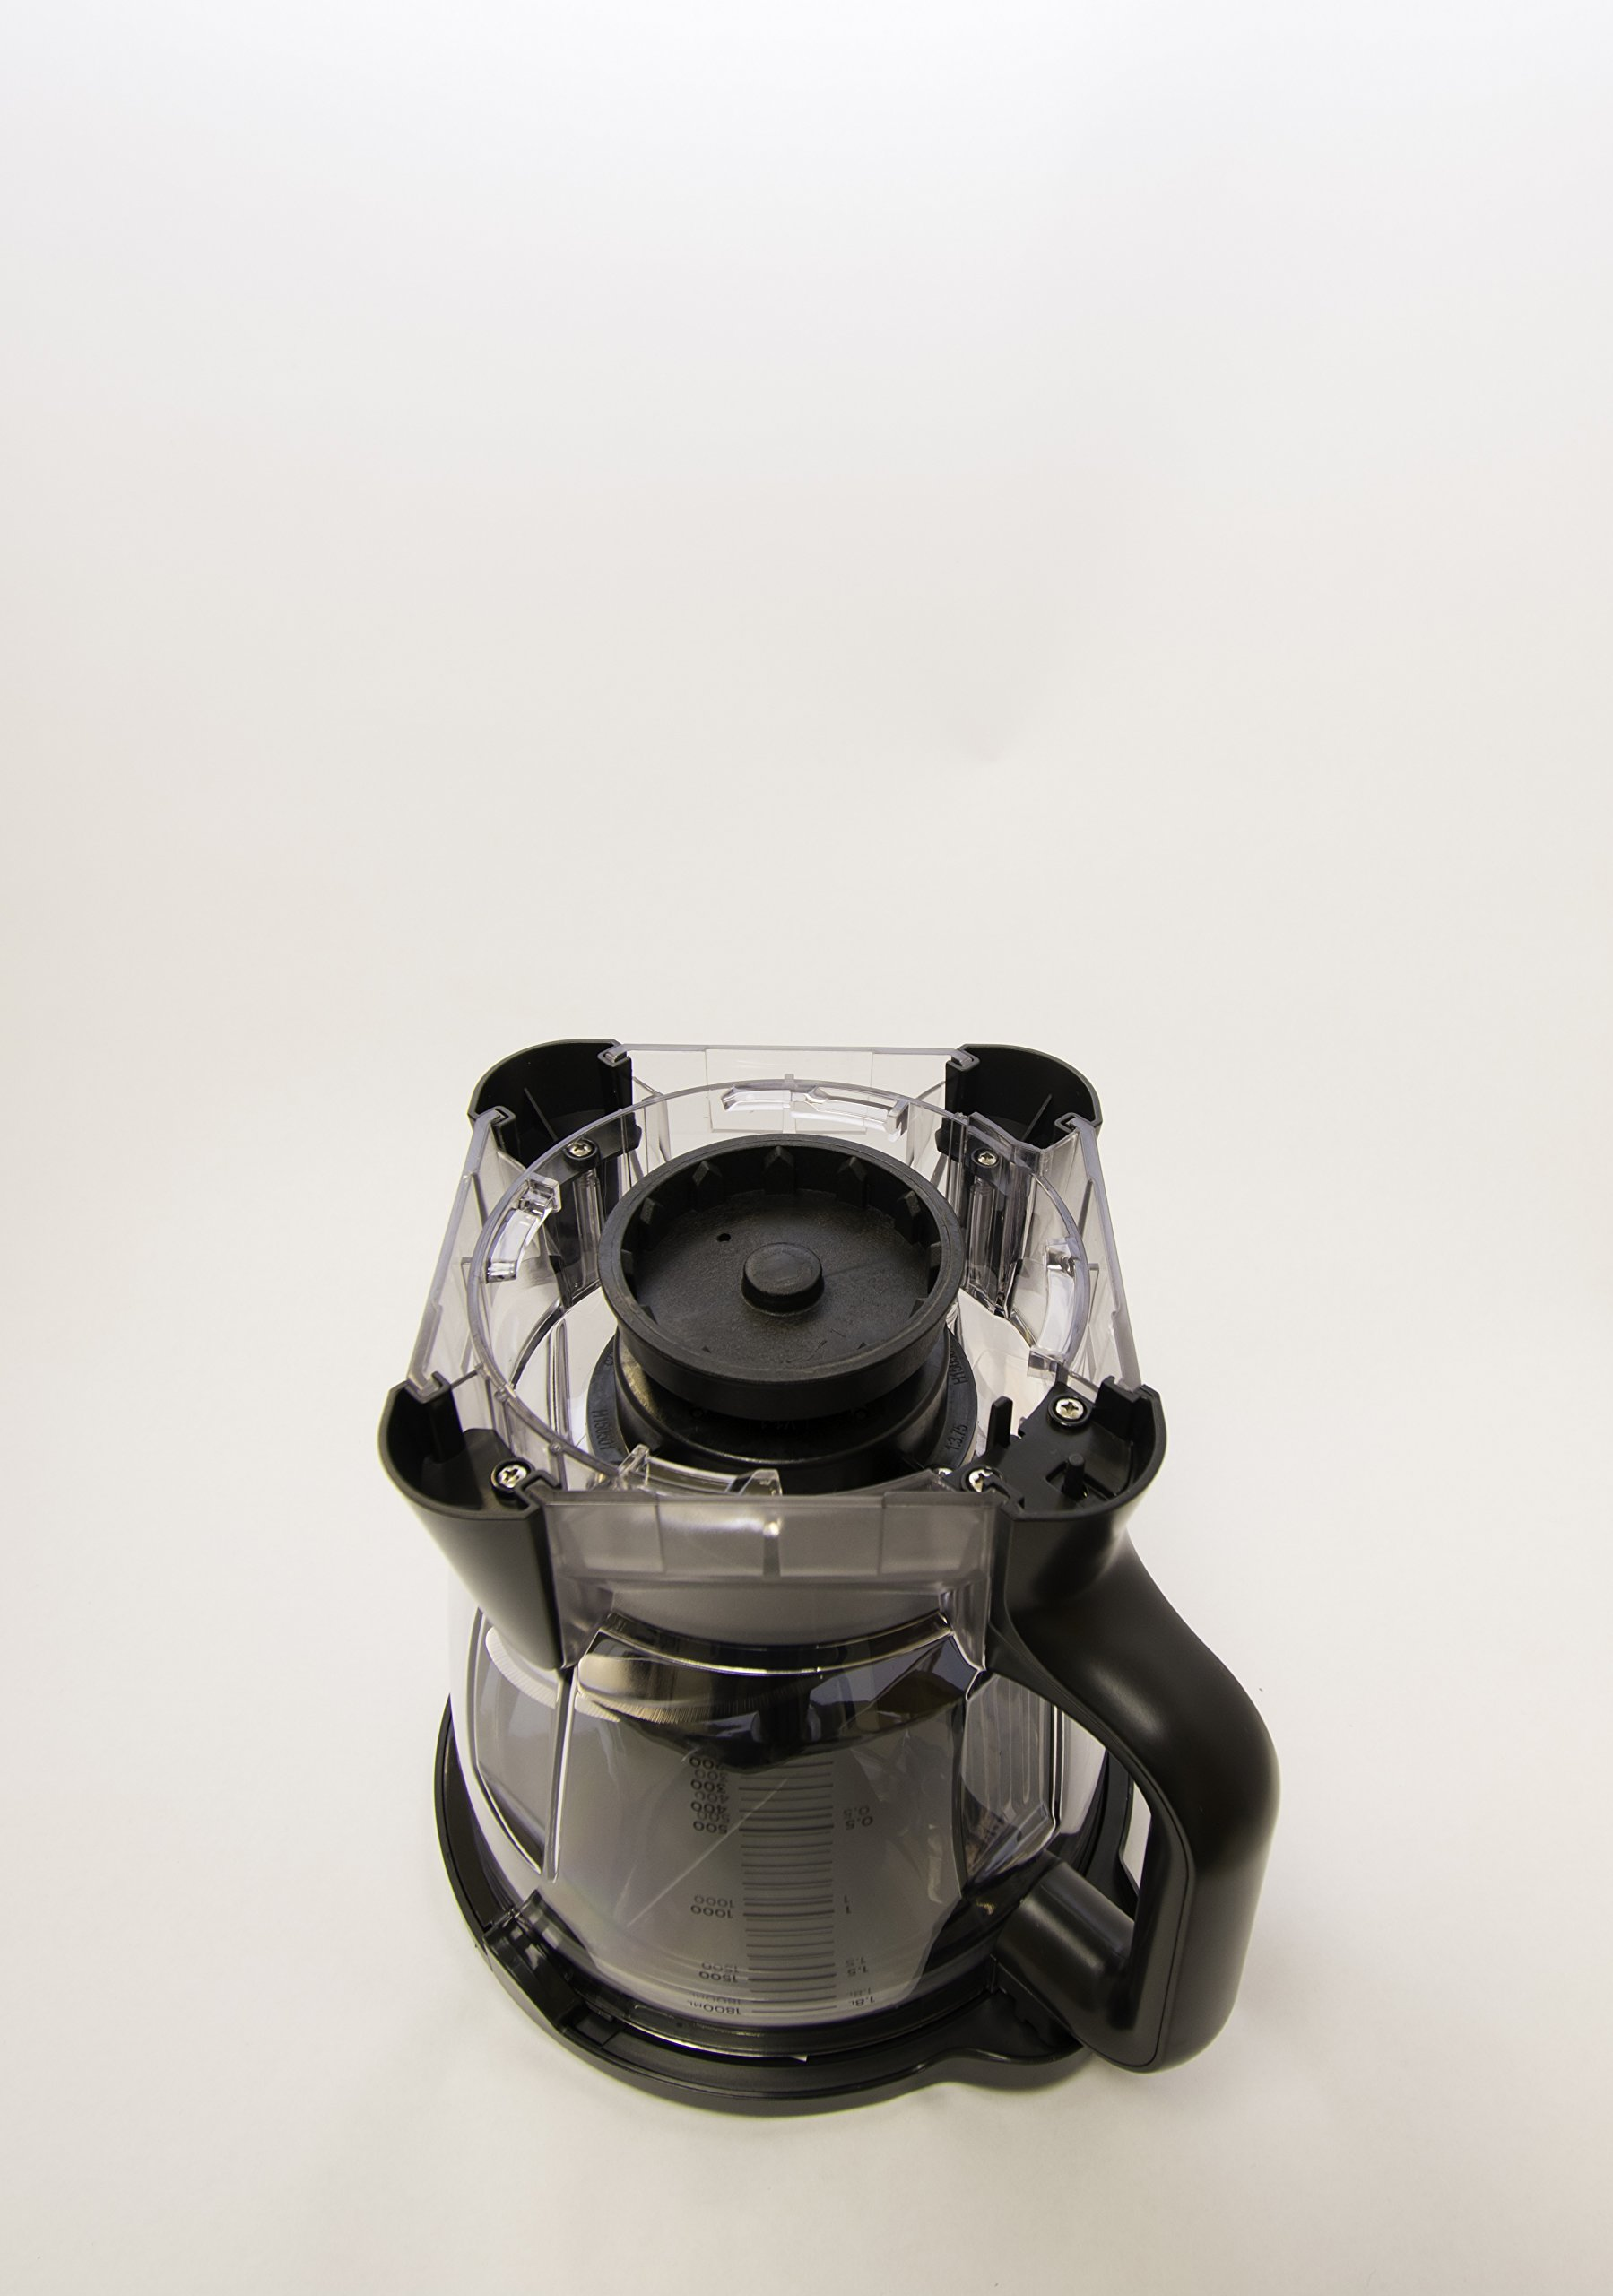 Replacement parts for Ninja Intelli-Sense (64 oz food processor) by BLENDERS AND PARTS (Image #2)